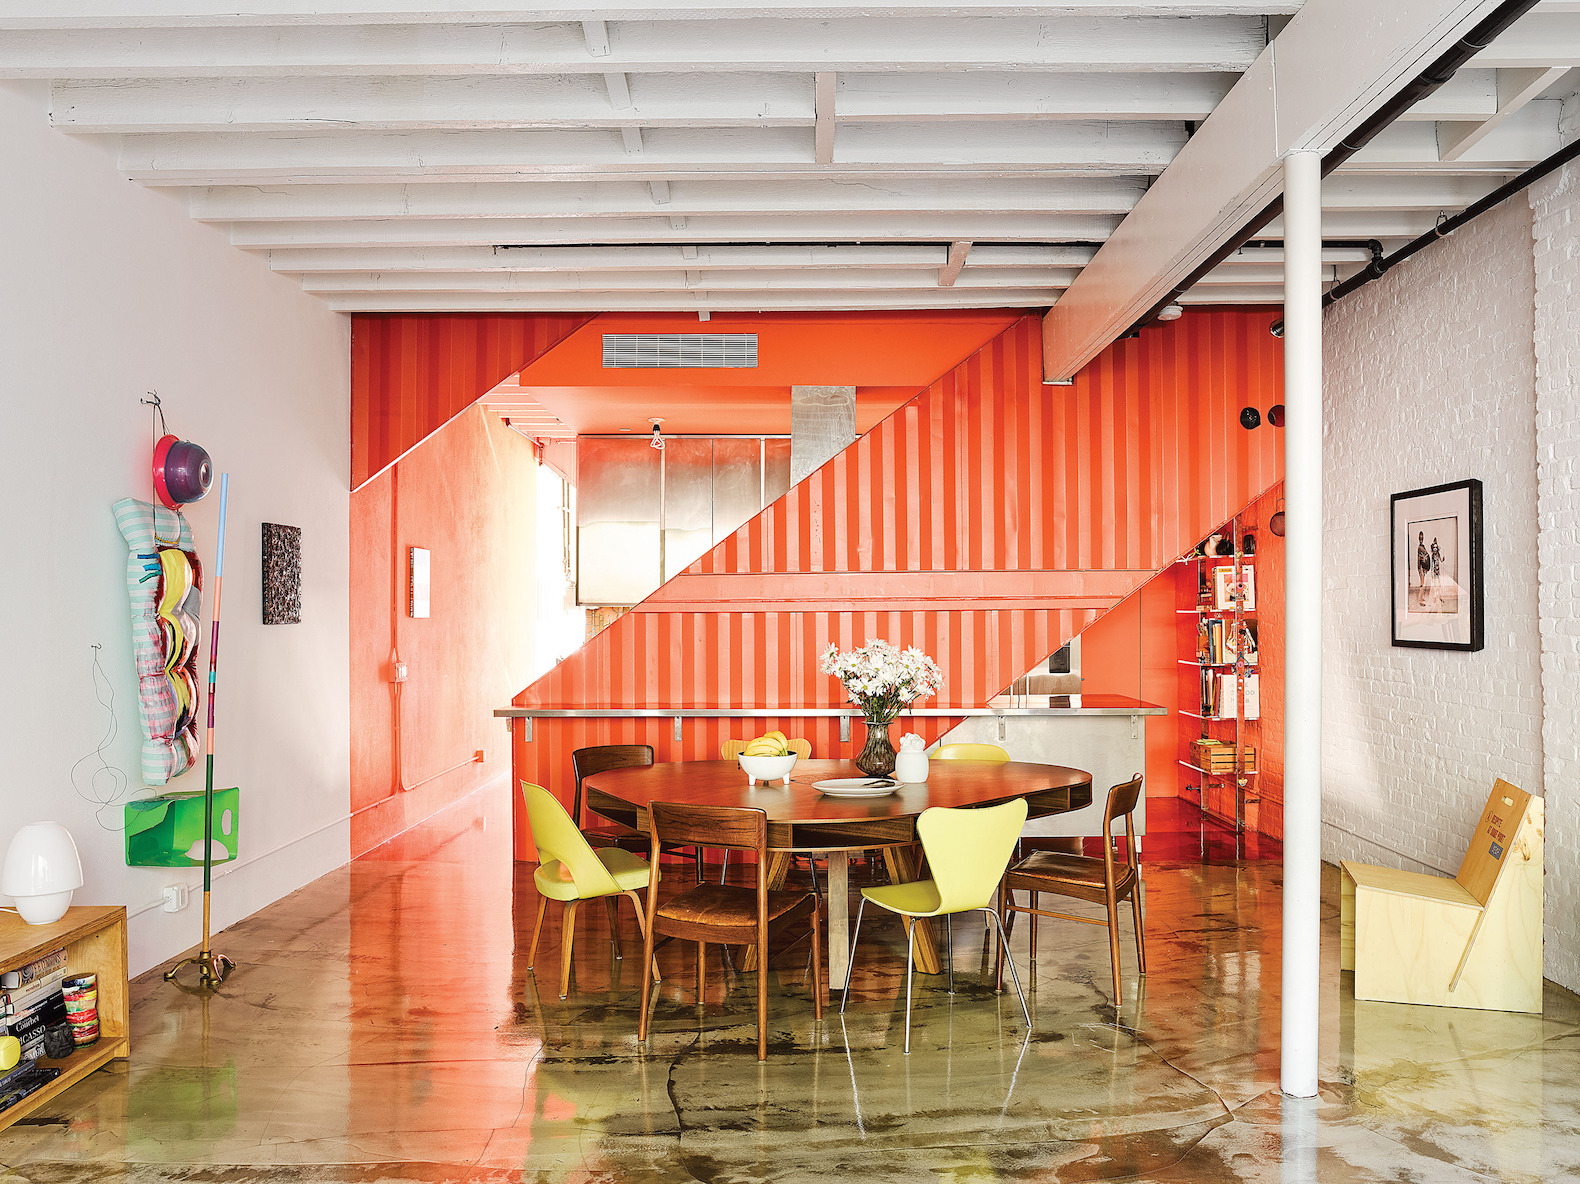 Repurposed shipping containers inject funky and unexpected color to a historic home renovation